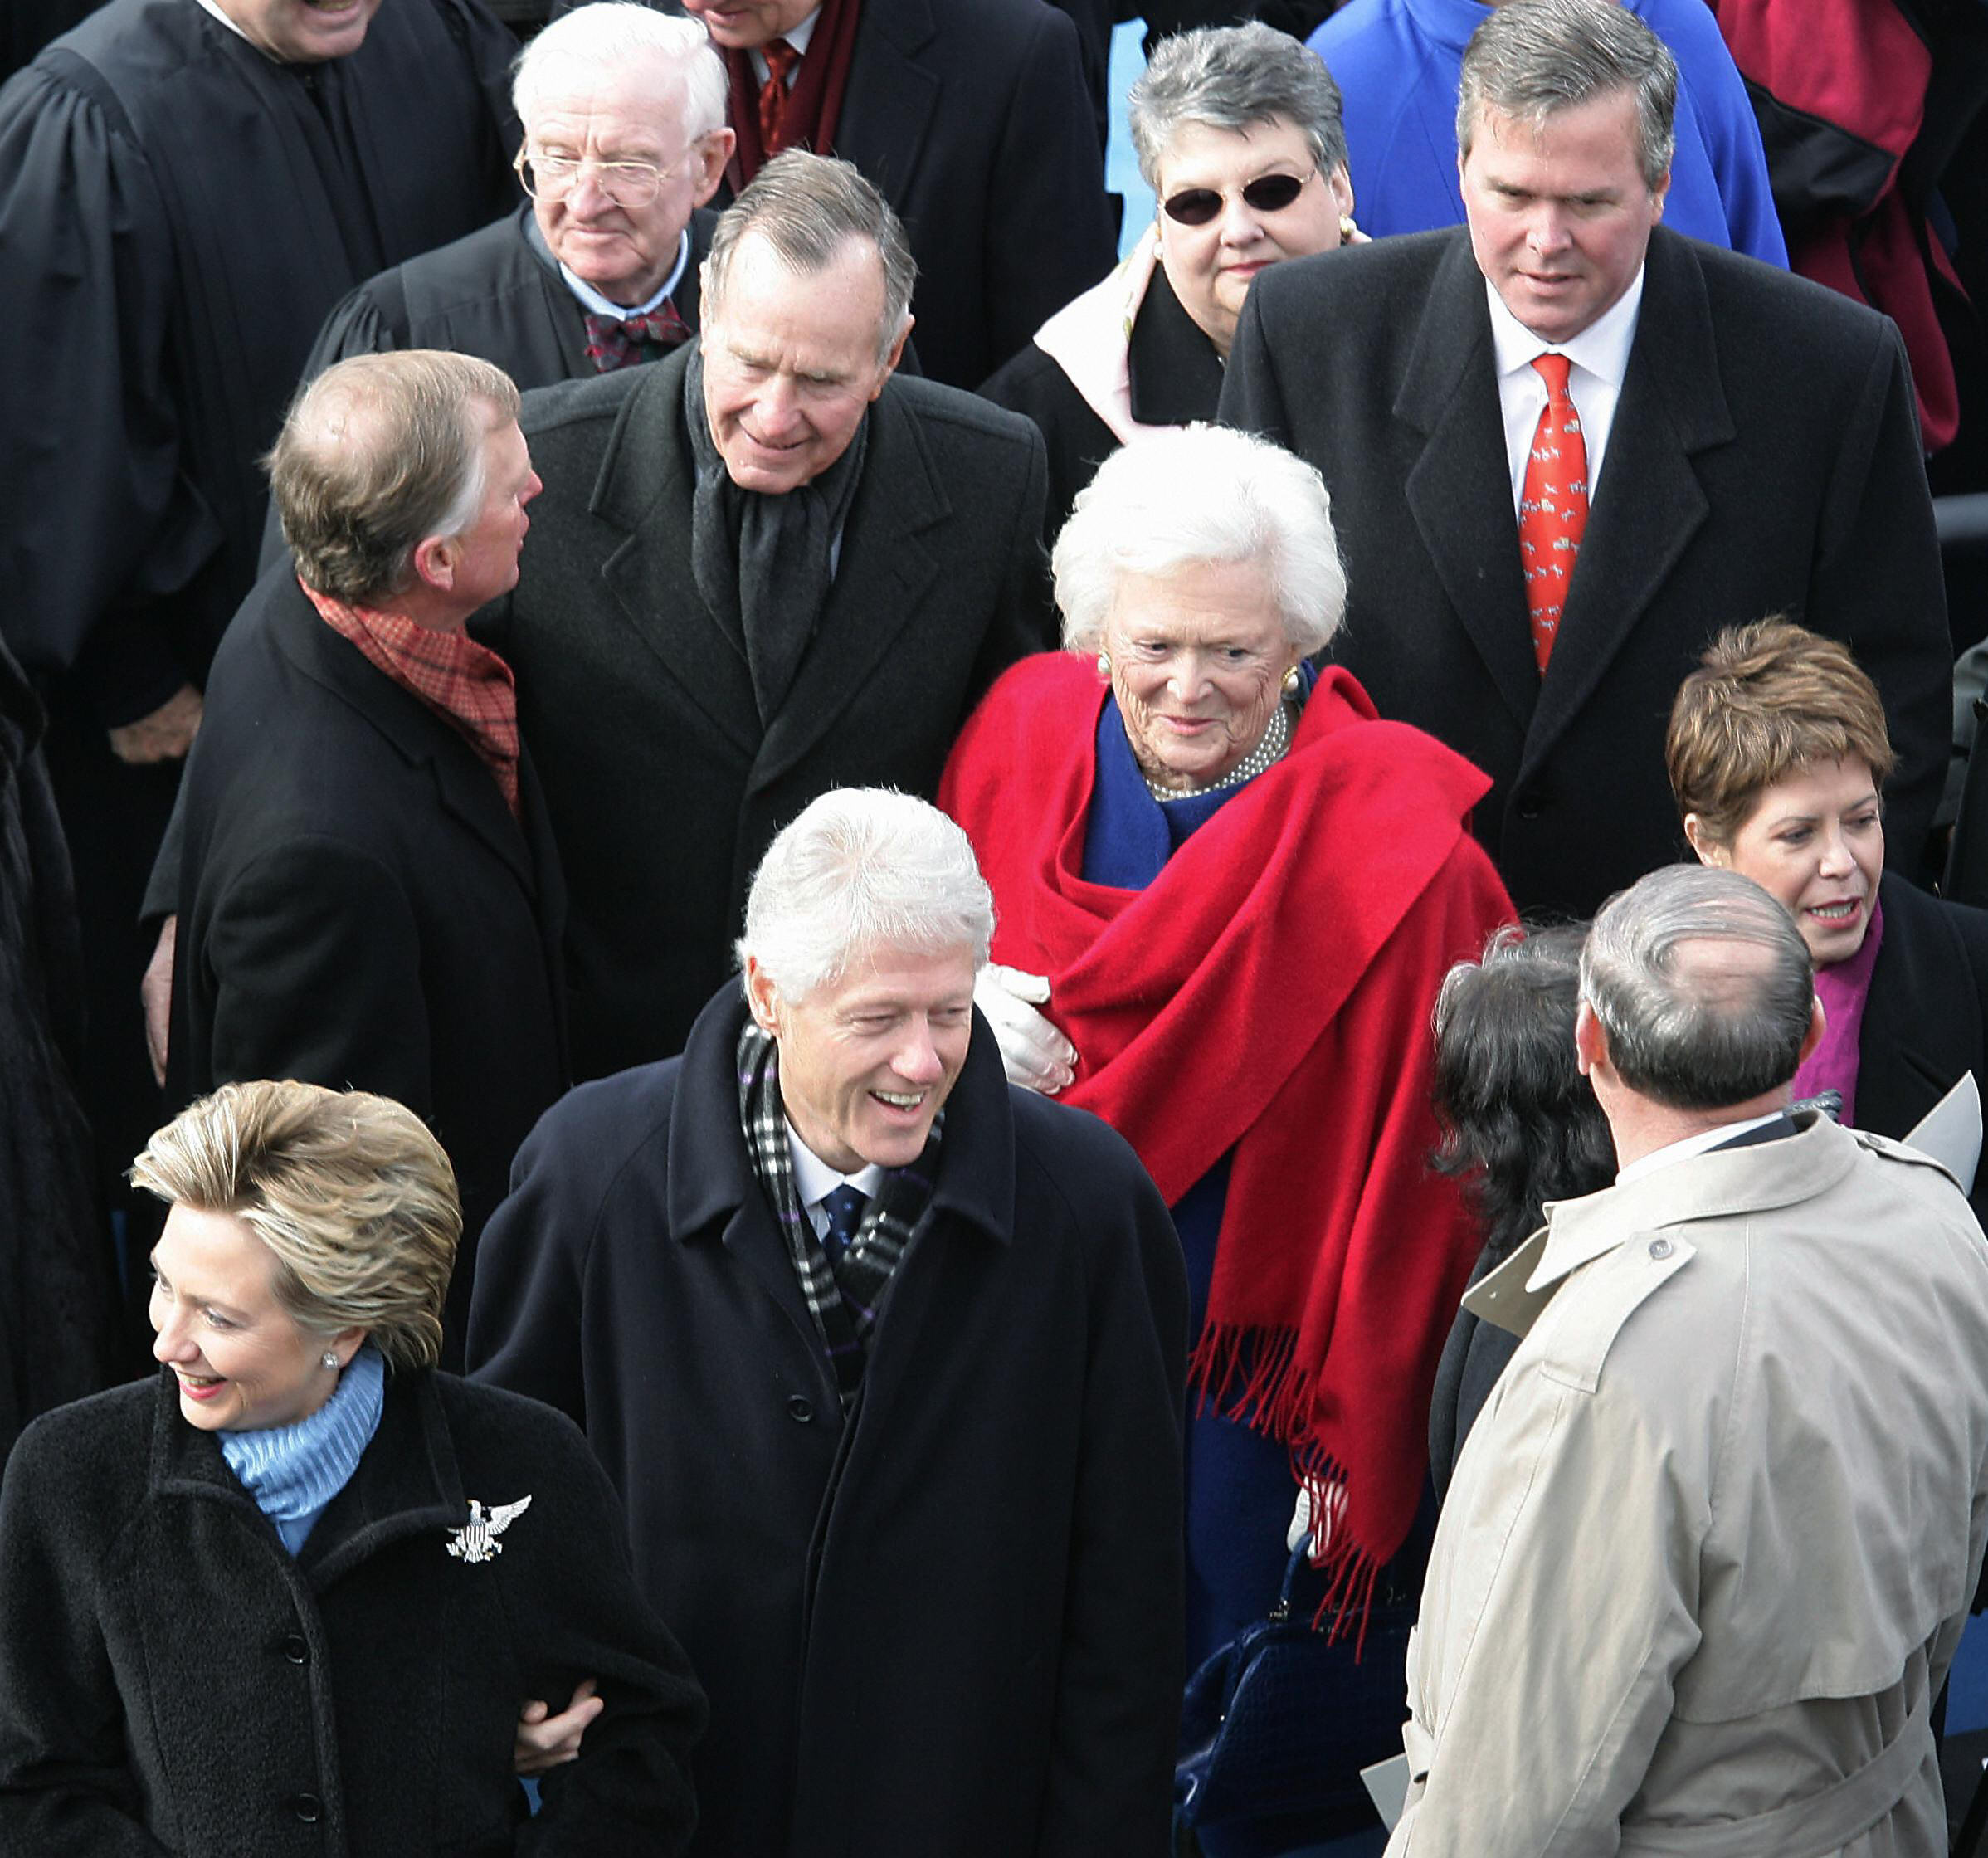 2005 inaugural ceremonies at the U.S. Capitol in Washington, D.C.